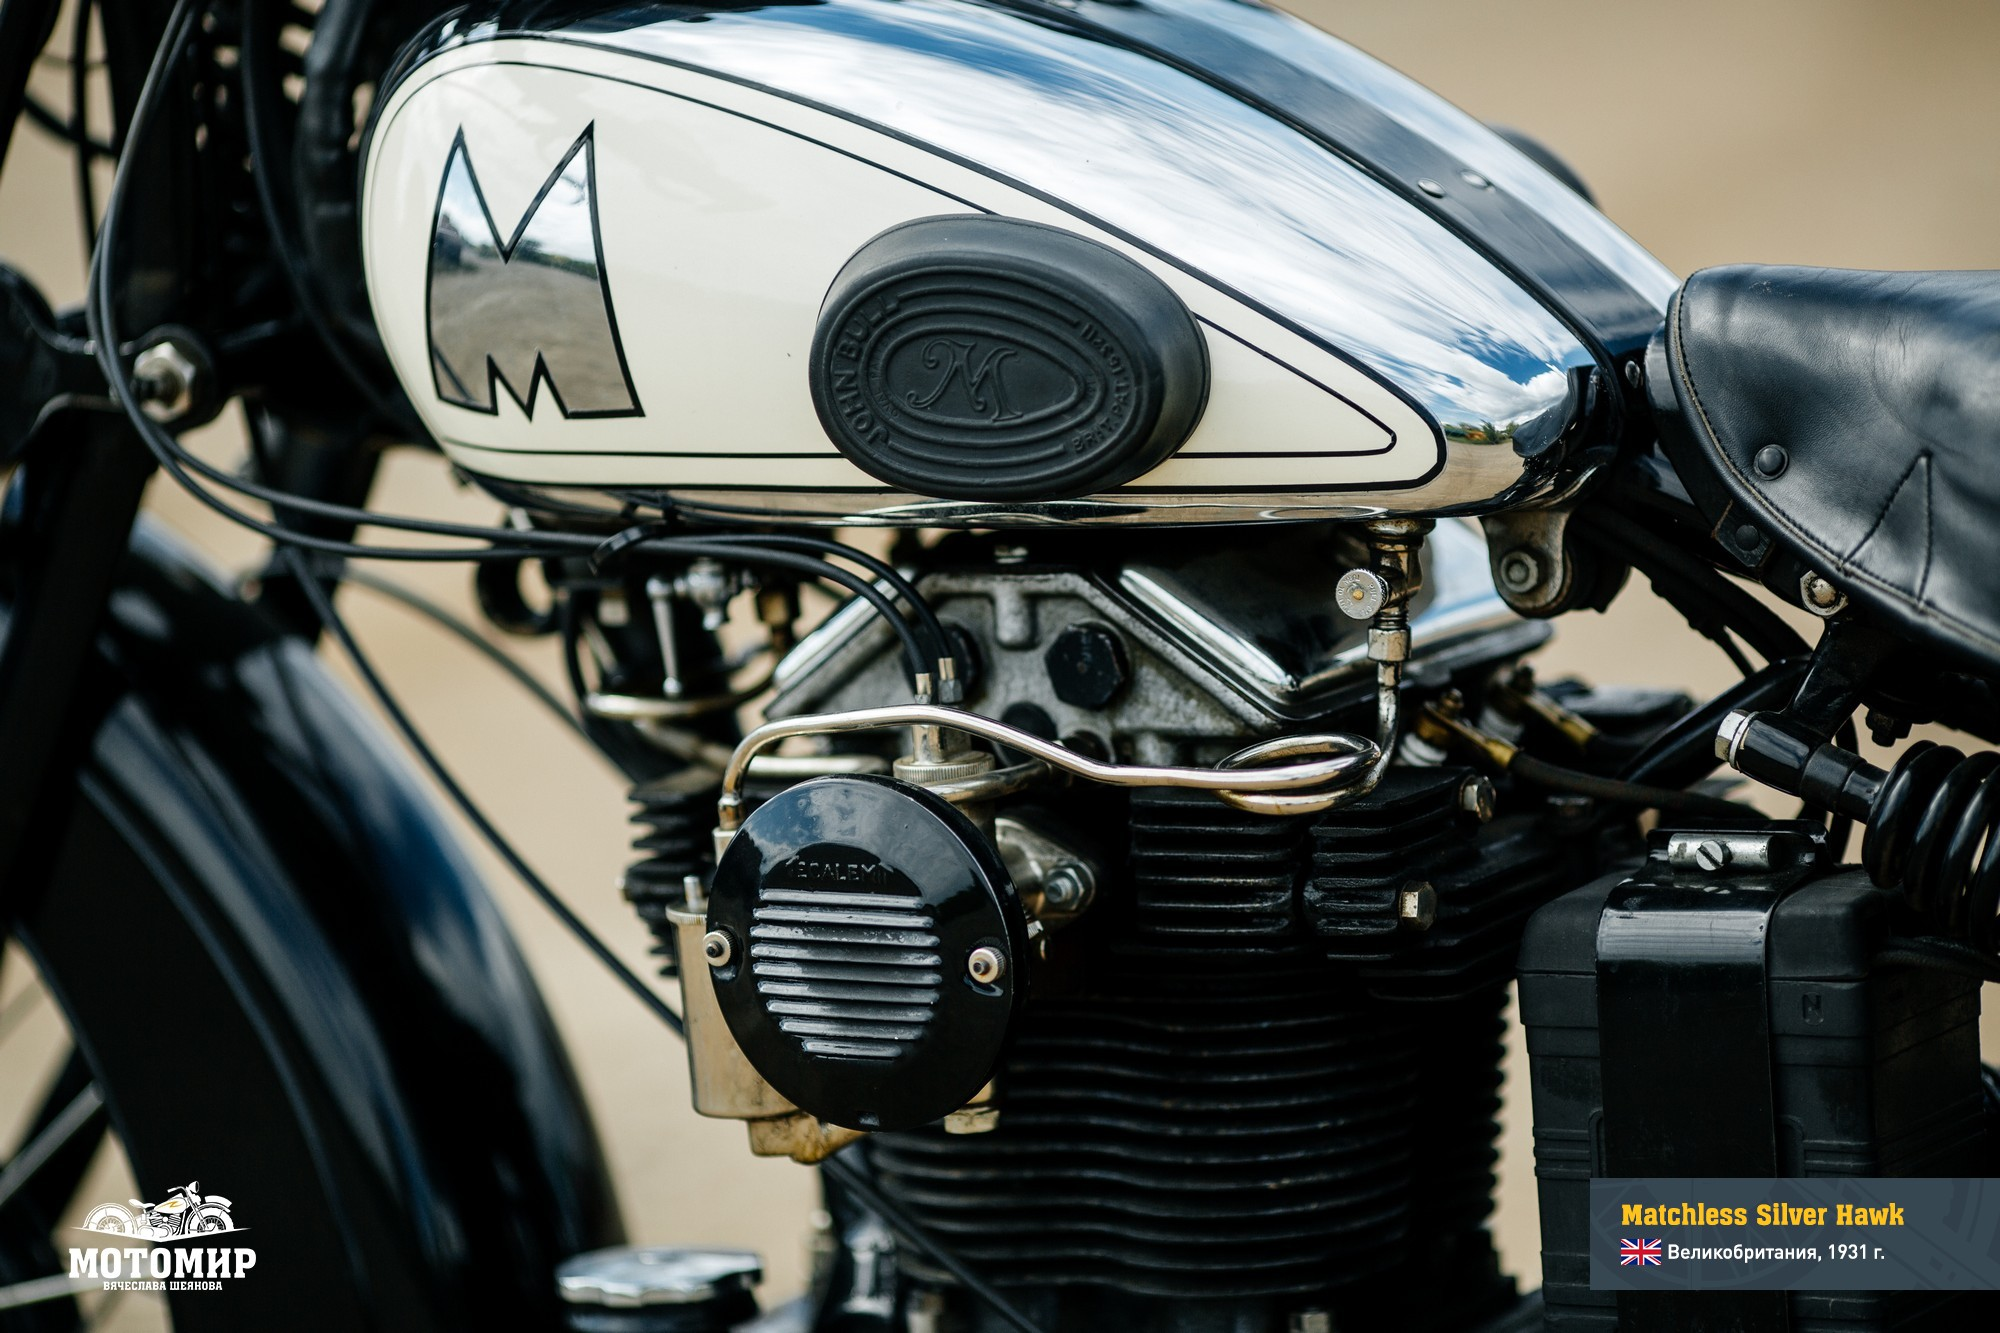 matchless-silver-hawk-201510-web-17